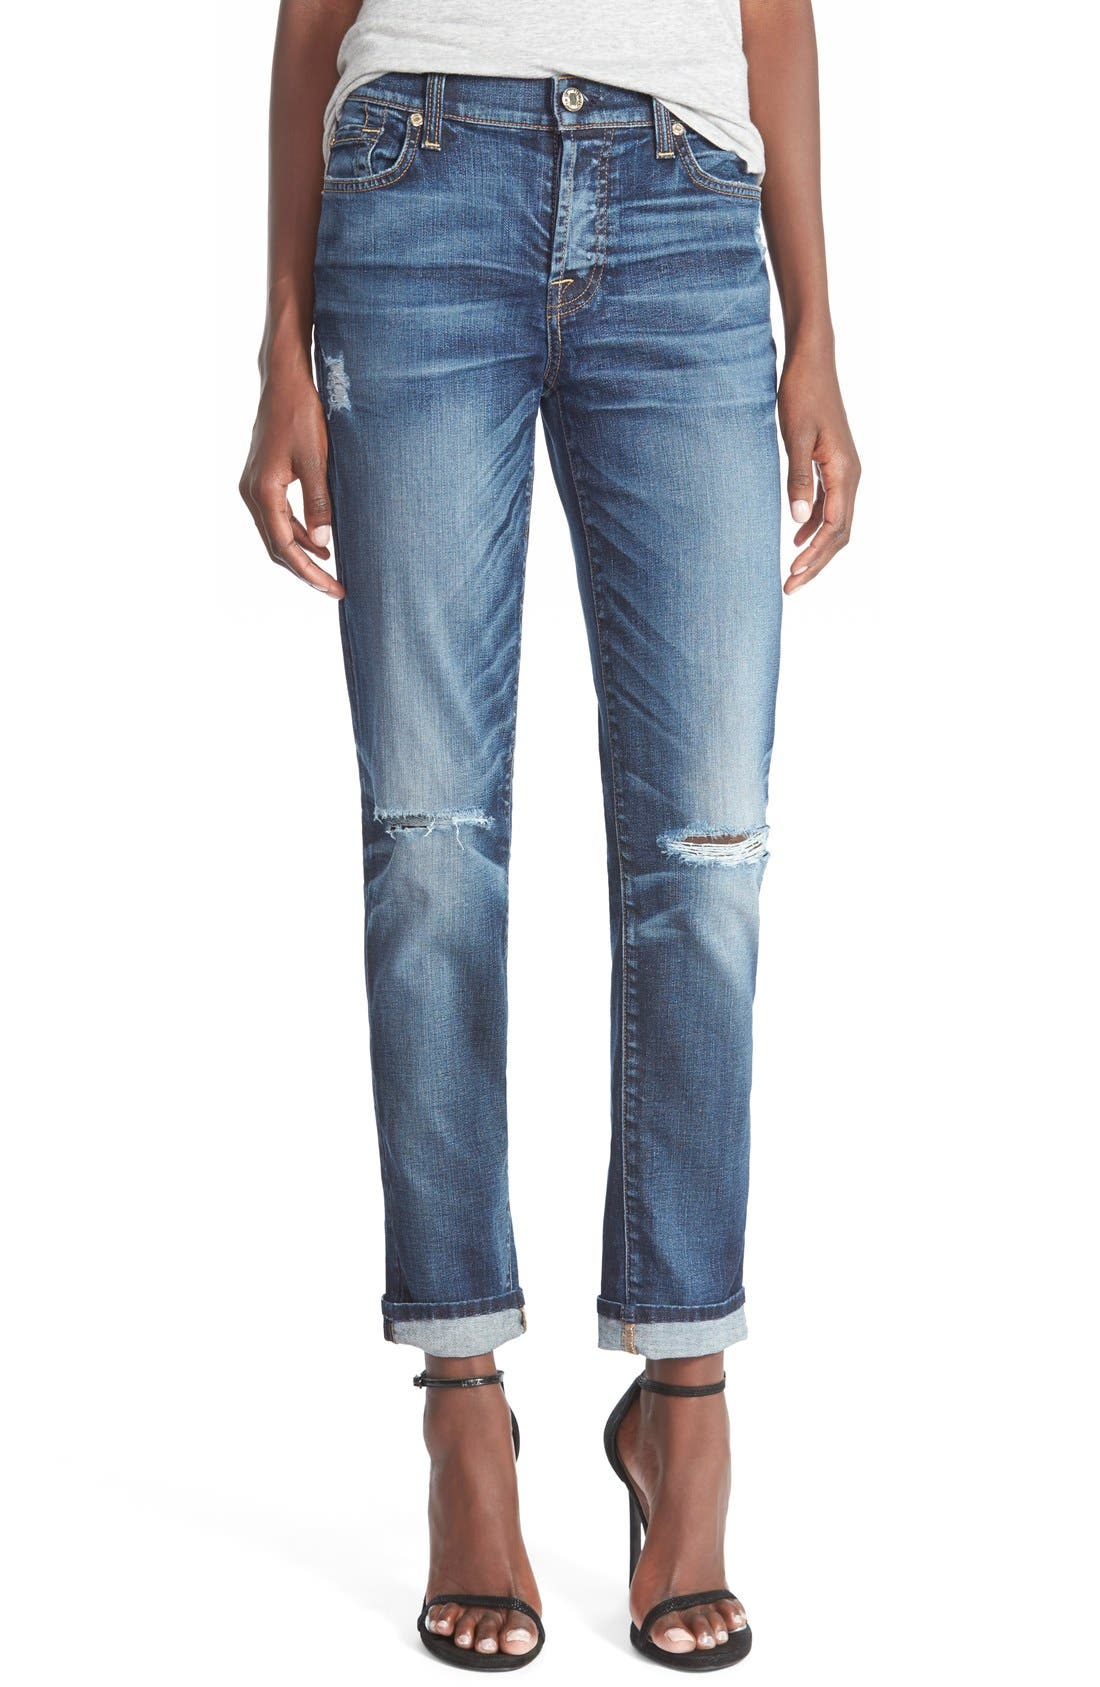 Alternate Image 1 Selected - 7 For All Mankind® 'Josefina' Mid Rise Boyfriend Jeans (Marie Vintage Blue 3)